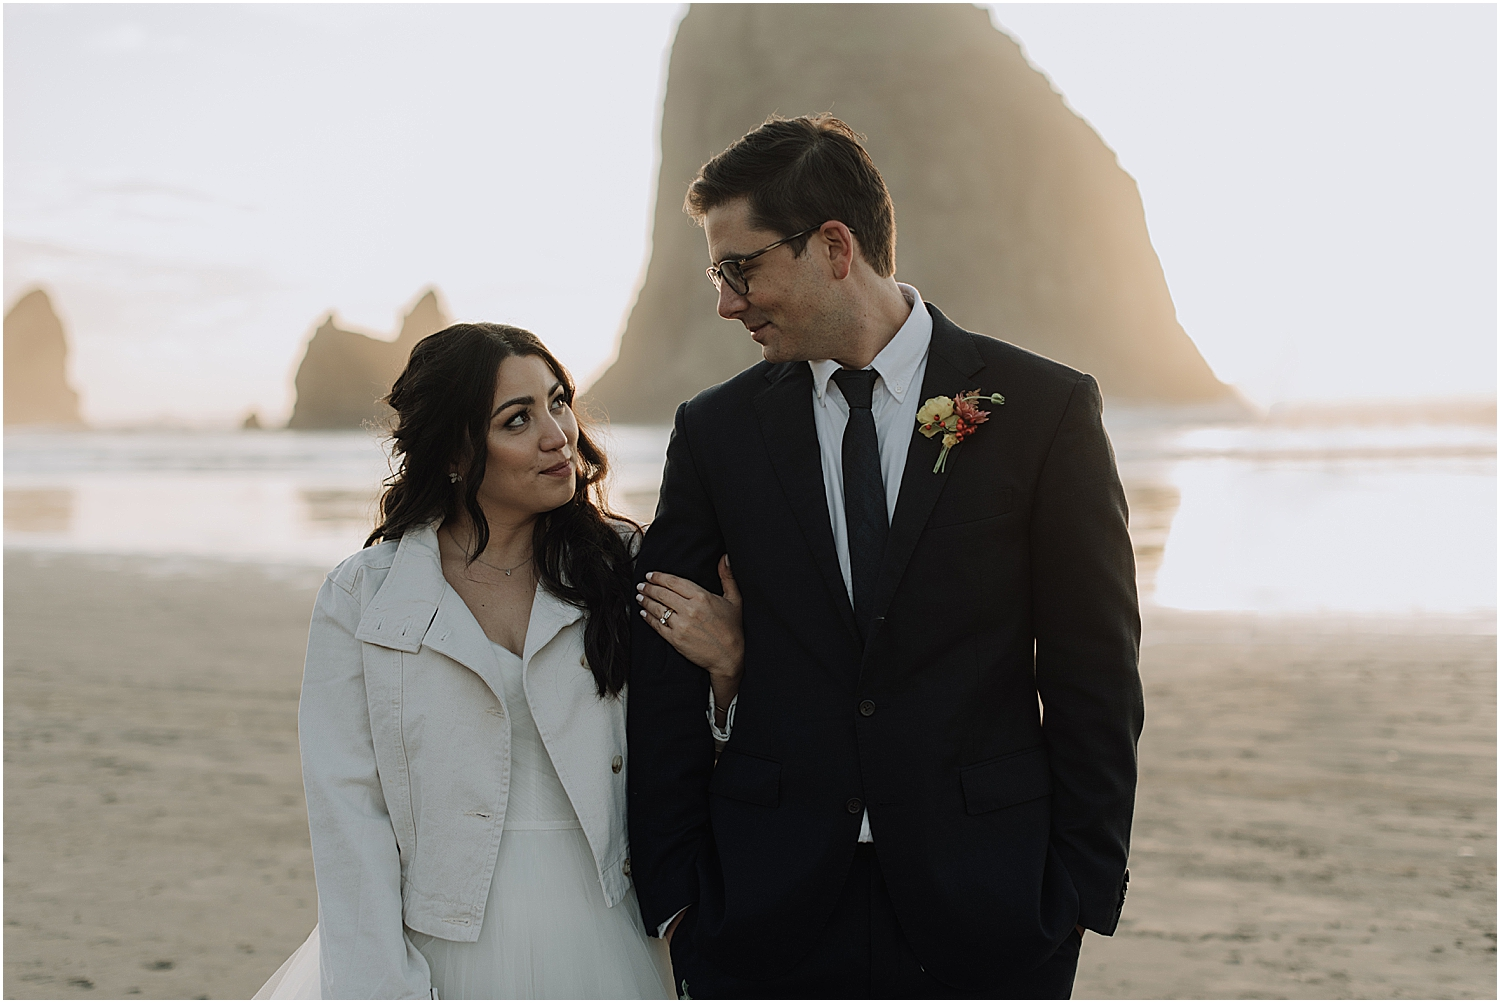 cannon beach elopement on the majestic oregon coast with naomi levit wedding photographer